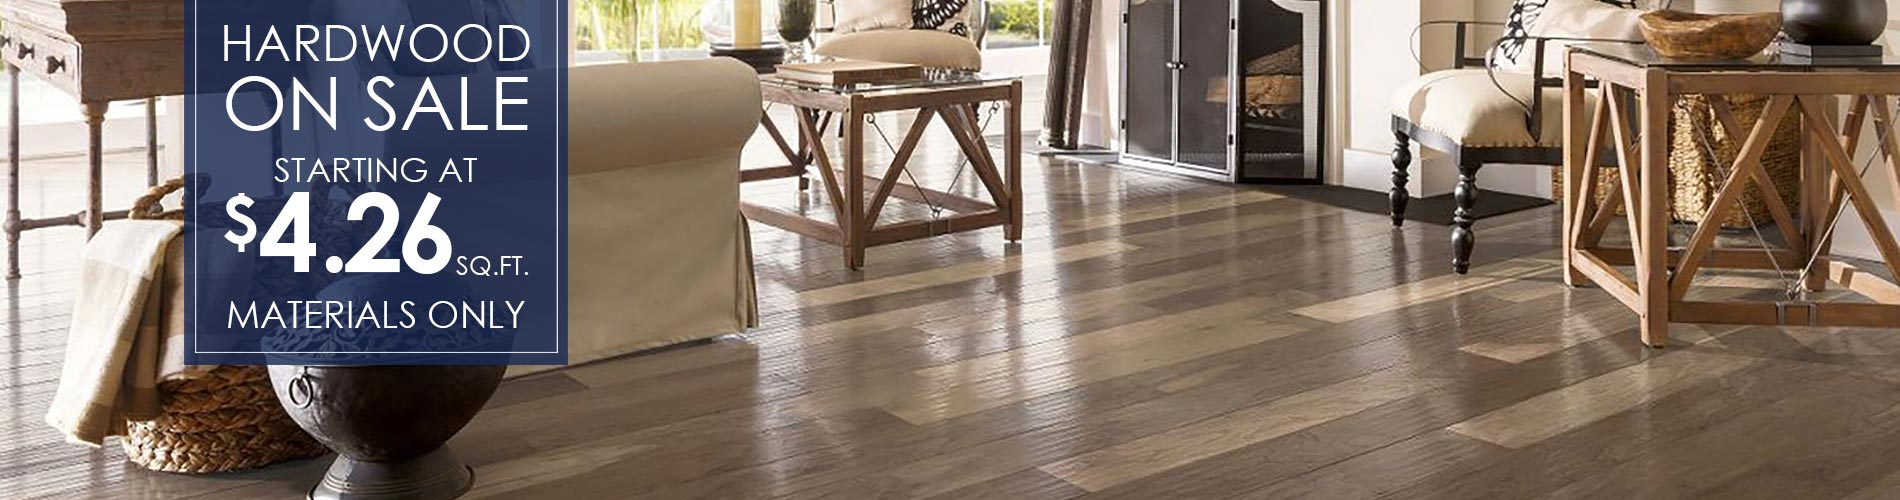 Hardwood flooring on sale starting at $4.26 sq.ft. (materials only) at Not Just Carpet!